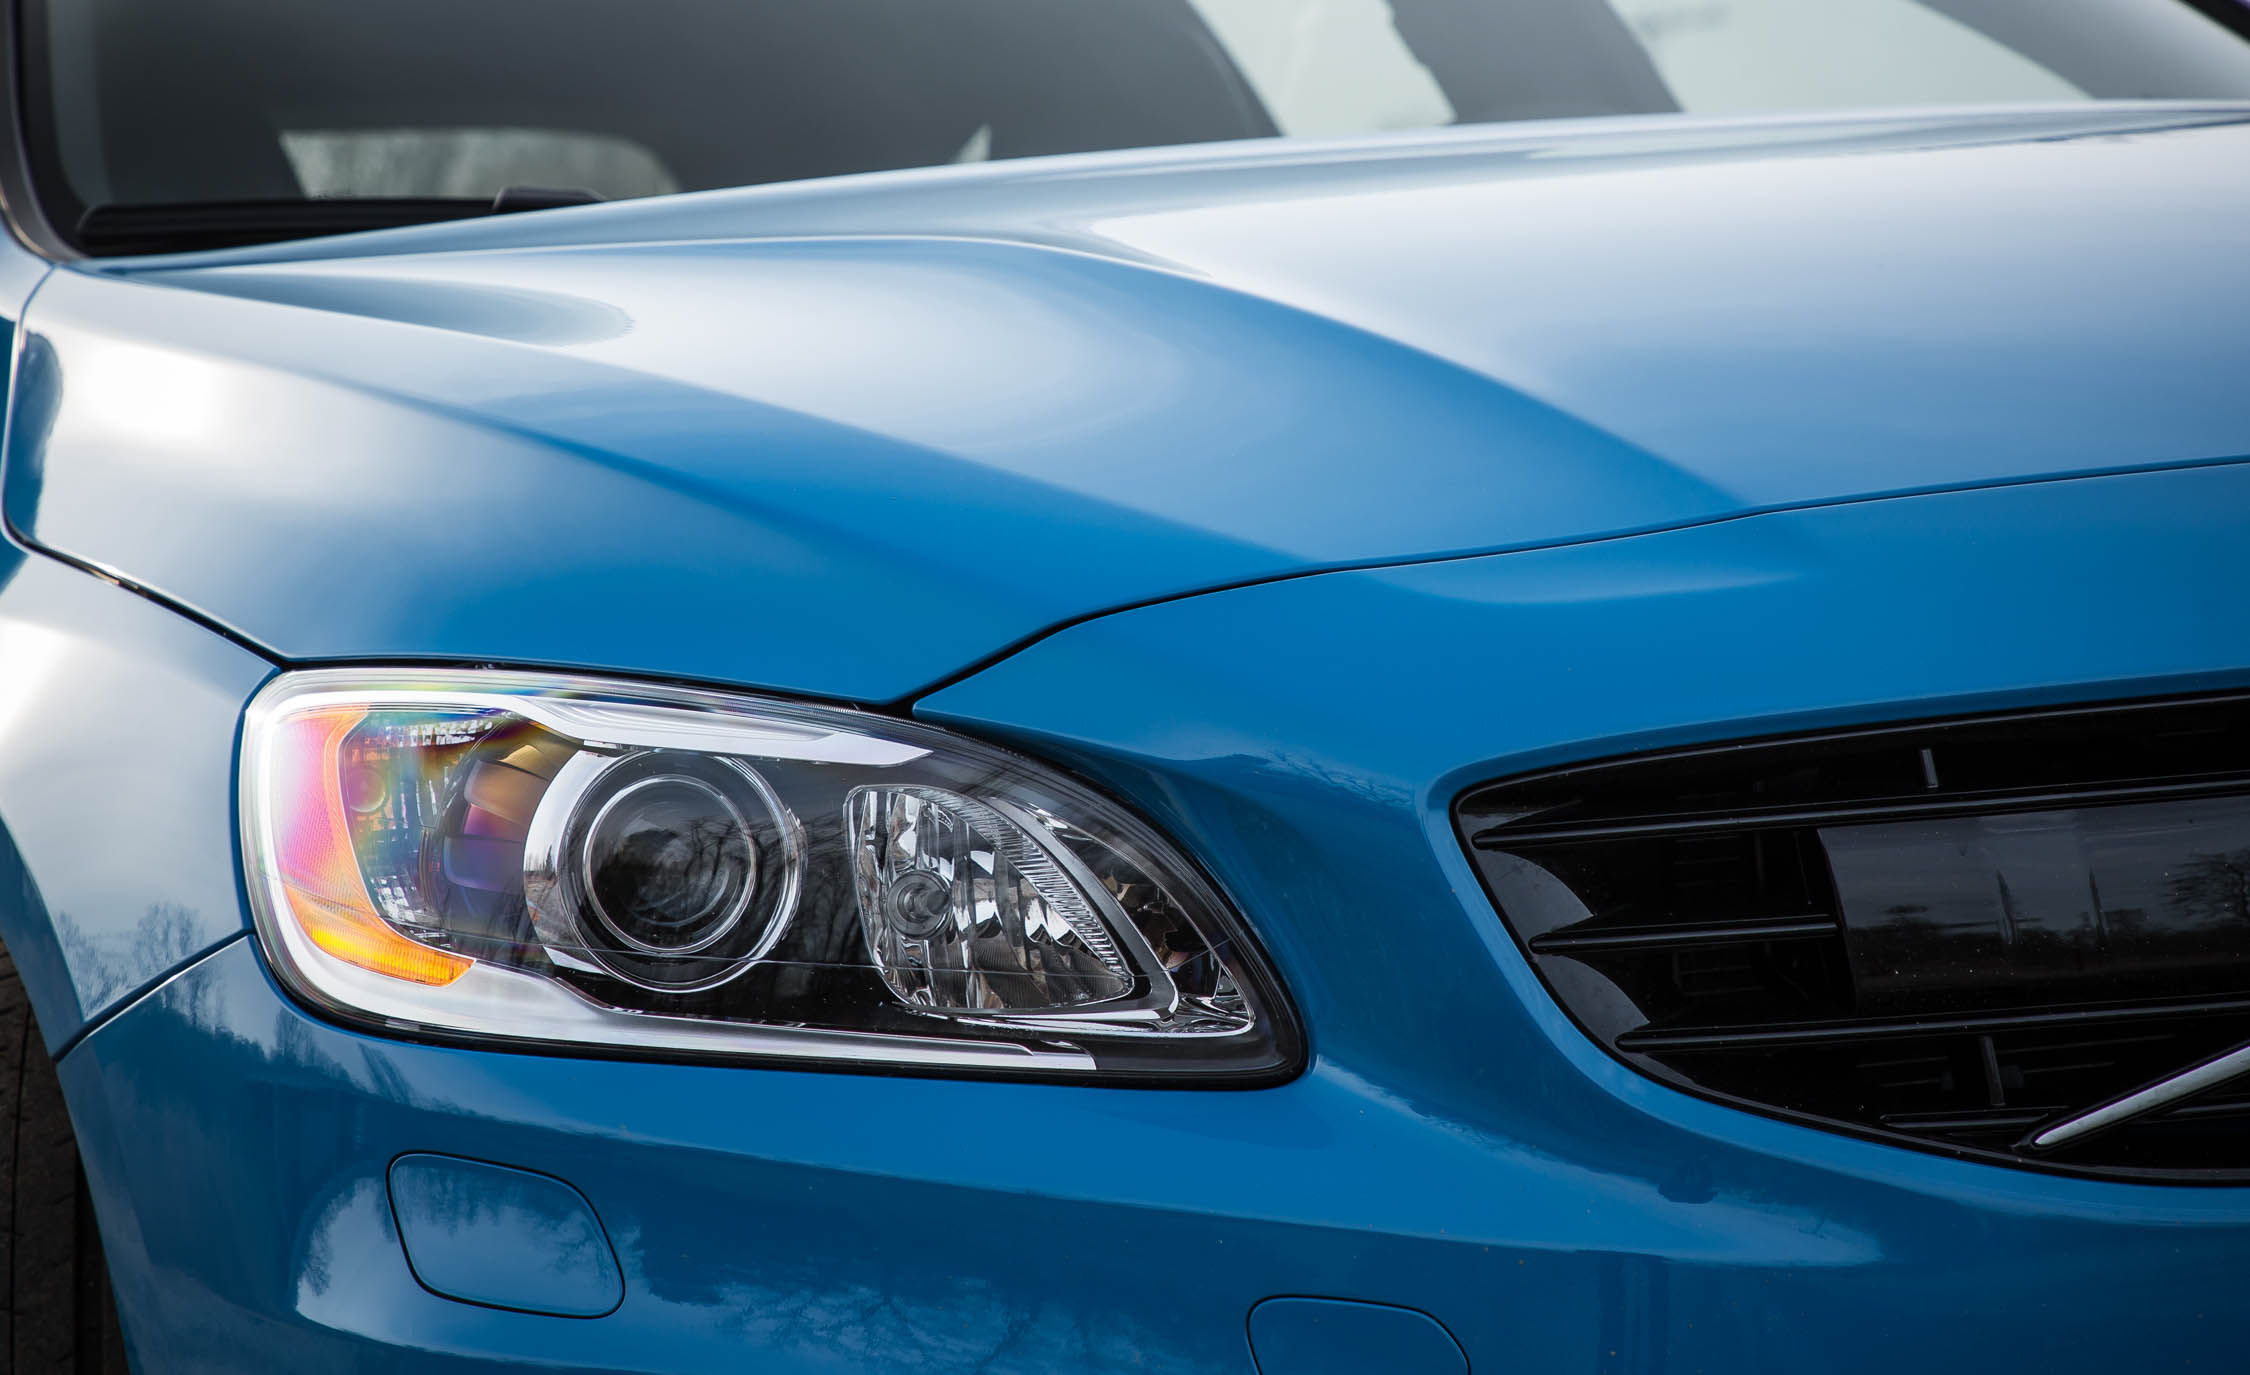 2017 Volvo V60 Polestar Exterior View Headlight (Photo 10 of 53)